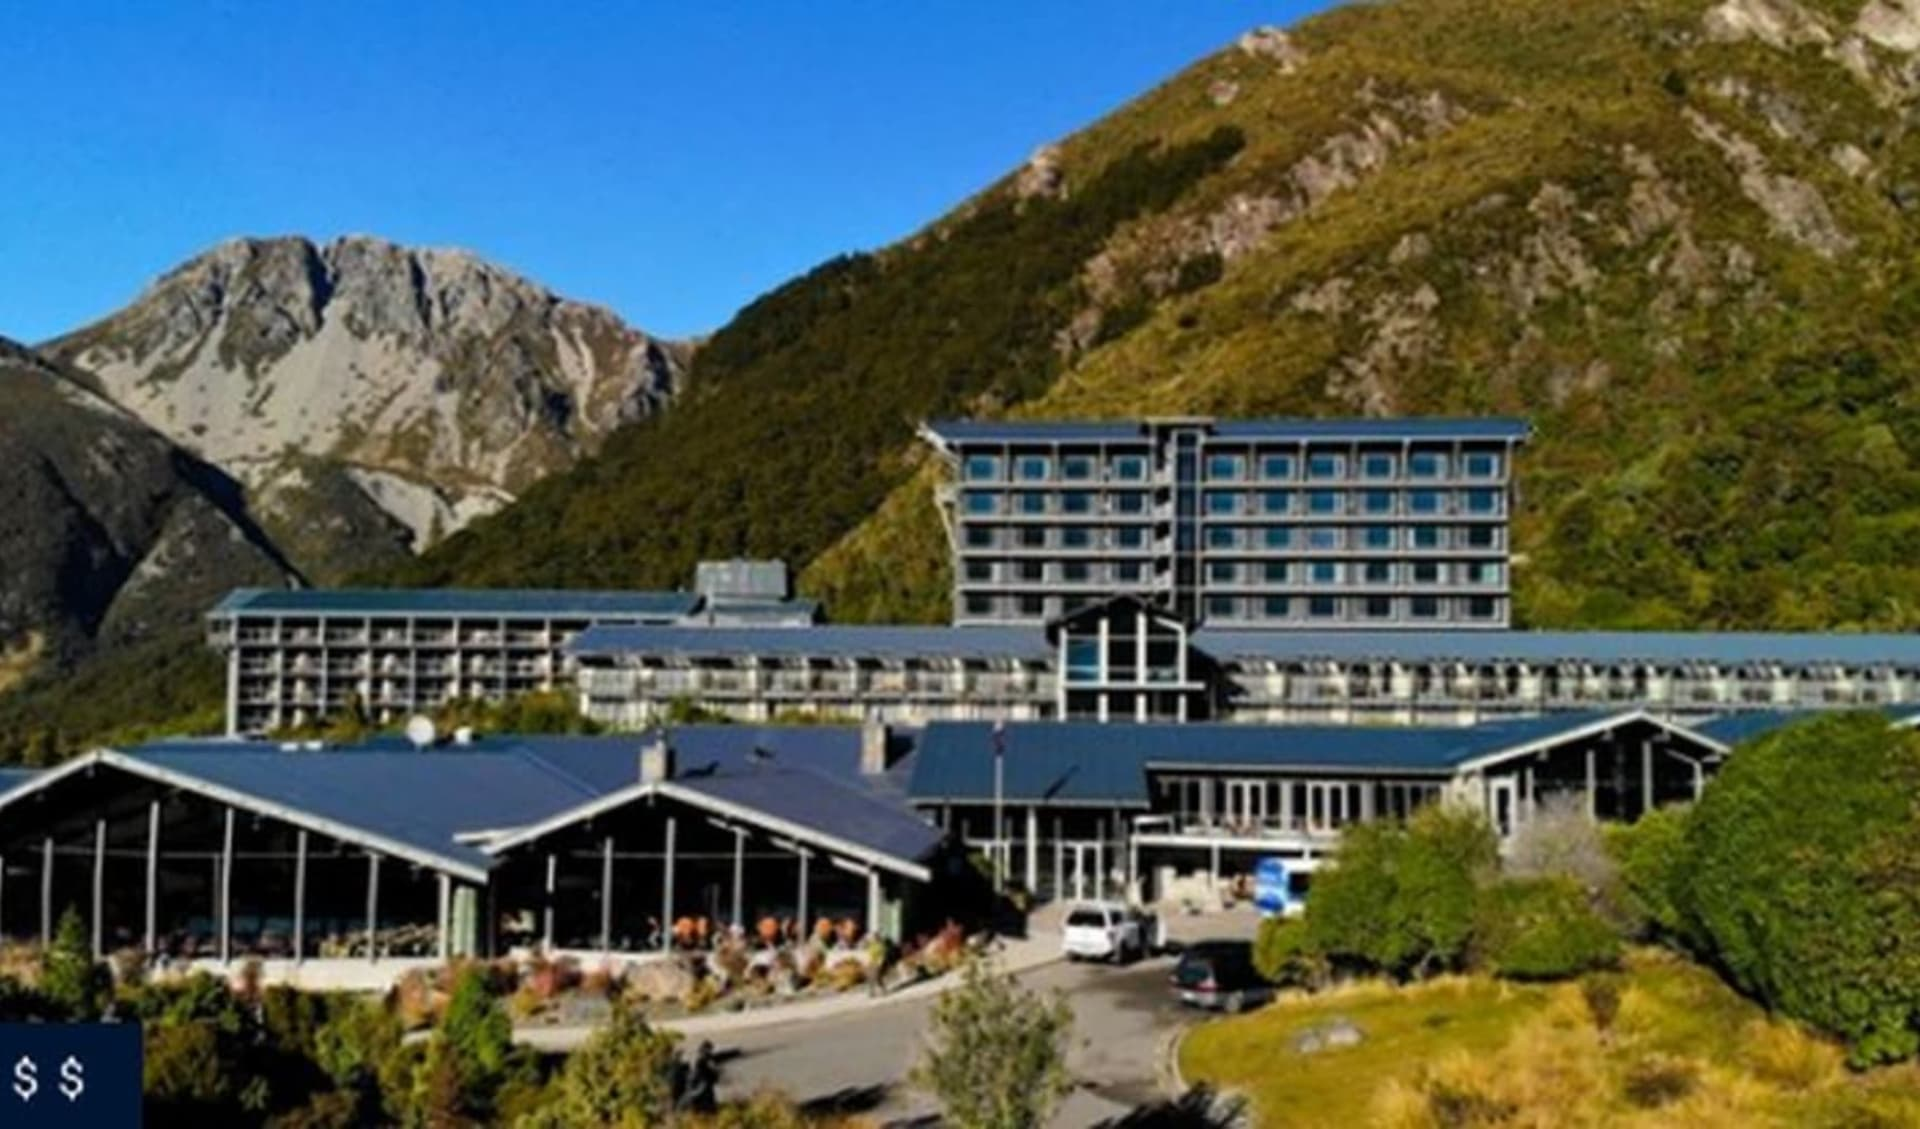 The Hermitage Hotel in Mount Cook: The Hermitage Mt Cook exterior